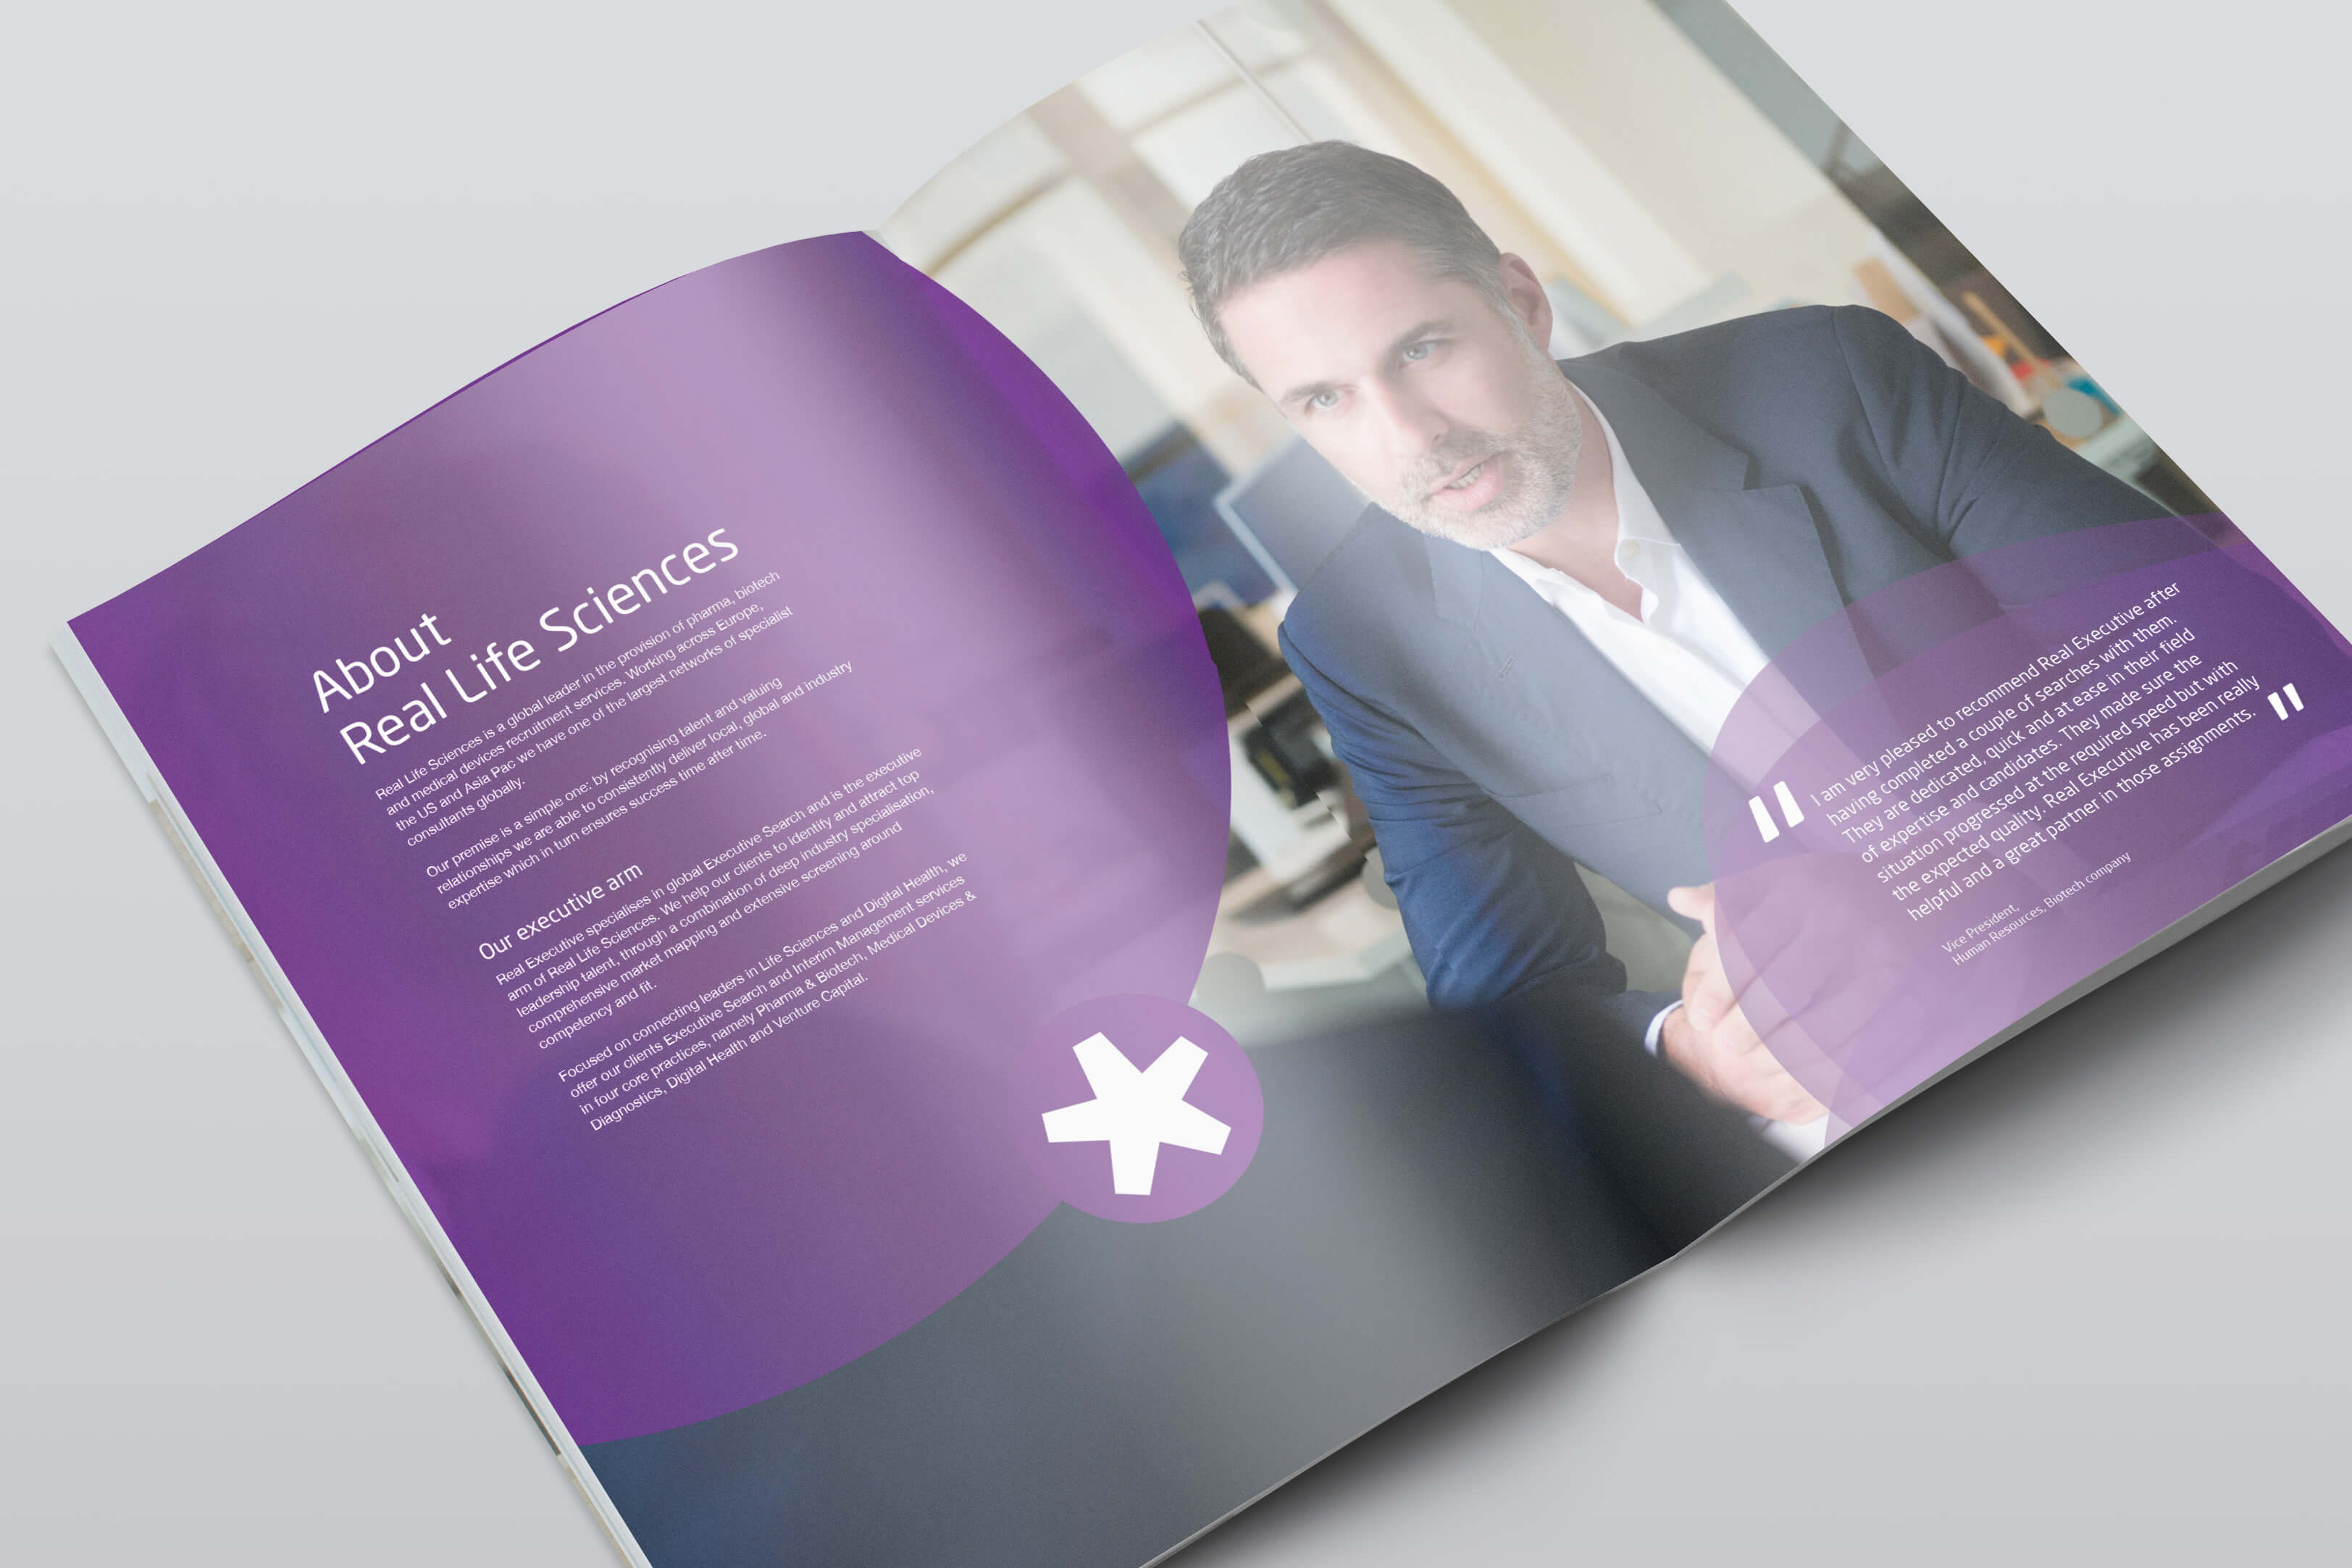 Real life sciences peter denney real life sciences is a brand i have worked on over the last 3 years covering digital print large format and powerpoint templates toneelgroepblik Images